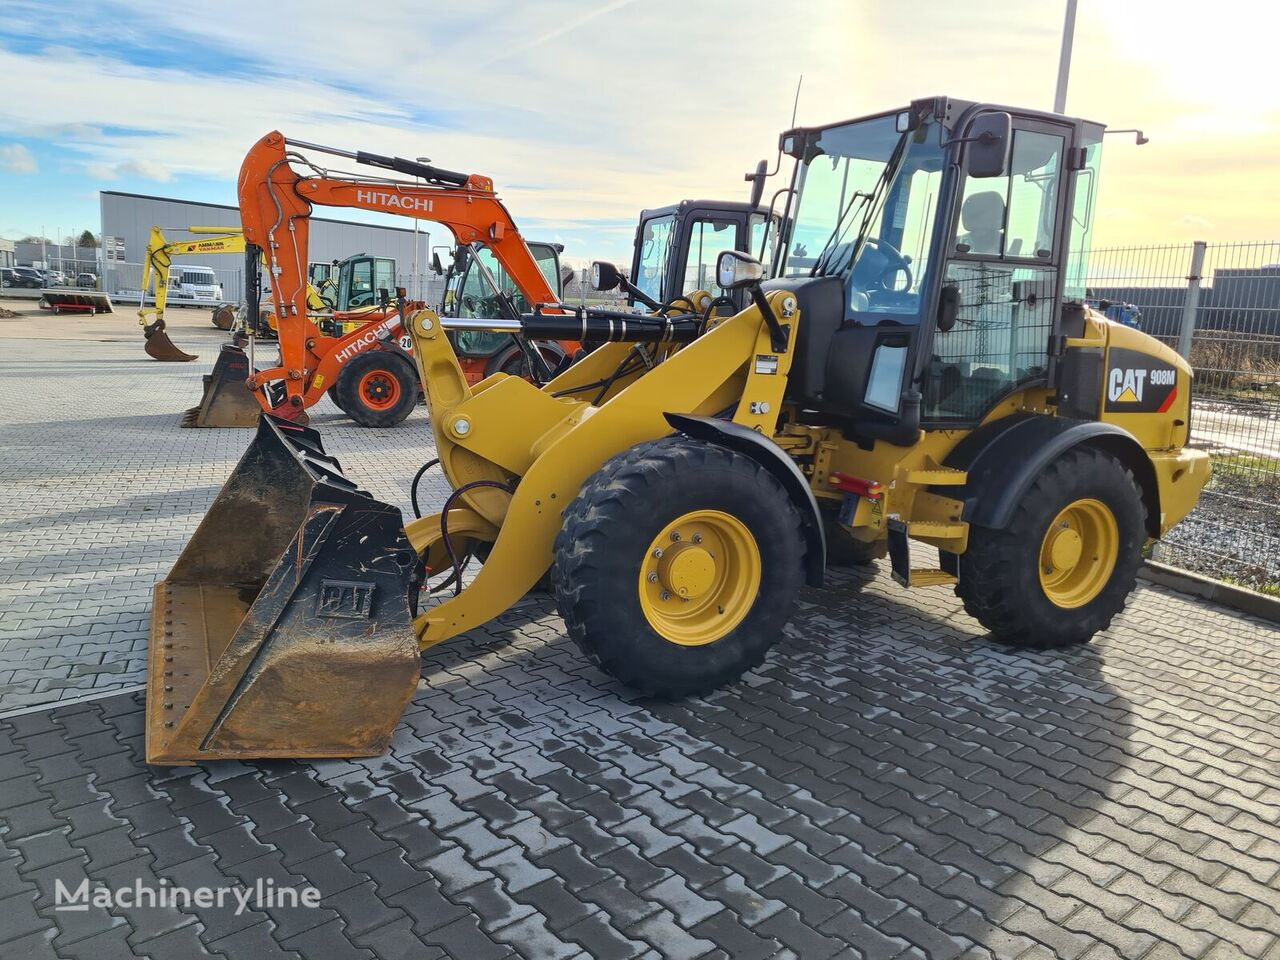 CATERPILLAR 908M    585h wheel loader